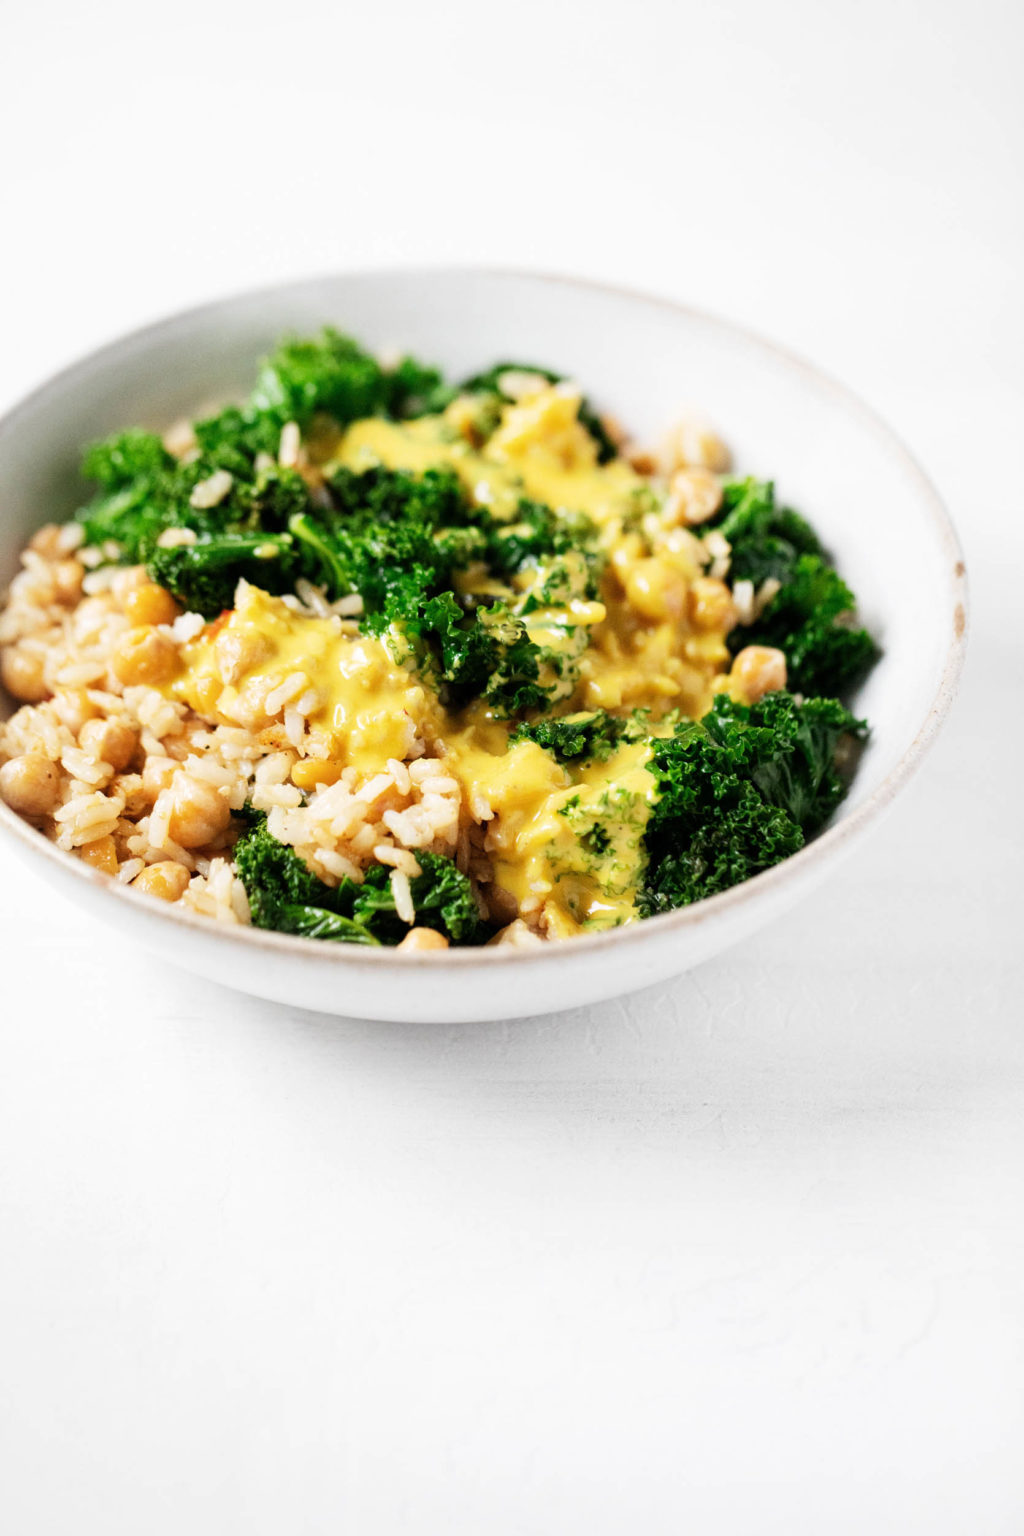 An angled photograph of a bowl of whole grains, beans, and greens, which have been dressed with a golden-hued, creamy sauce.